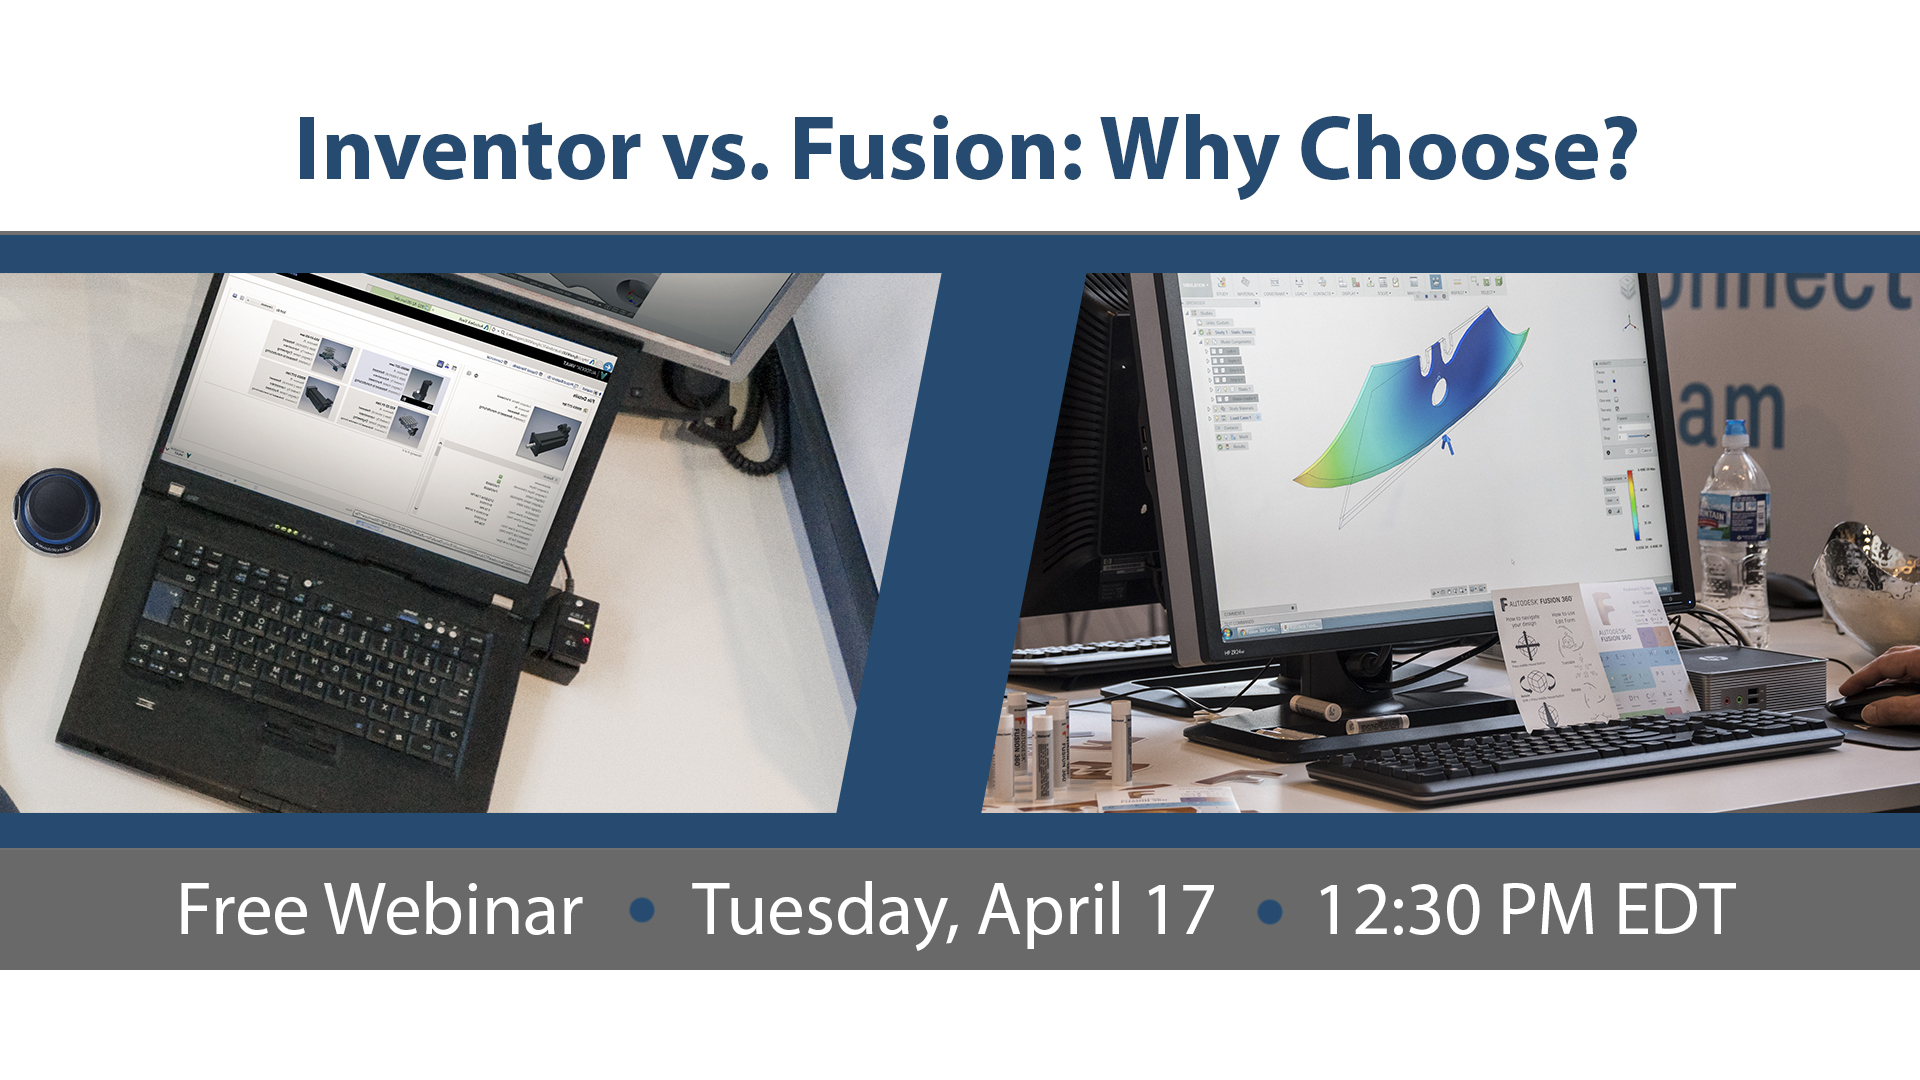 Inventor vs. Fusion: Why Choose?